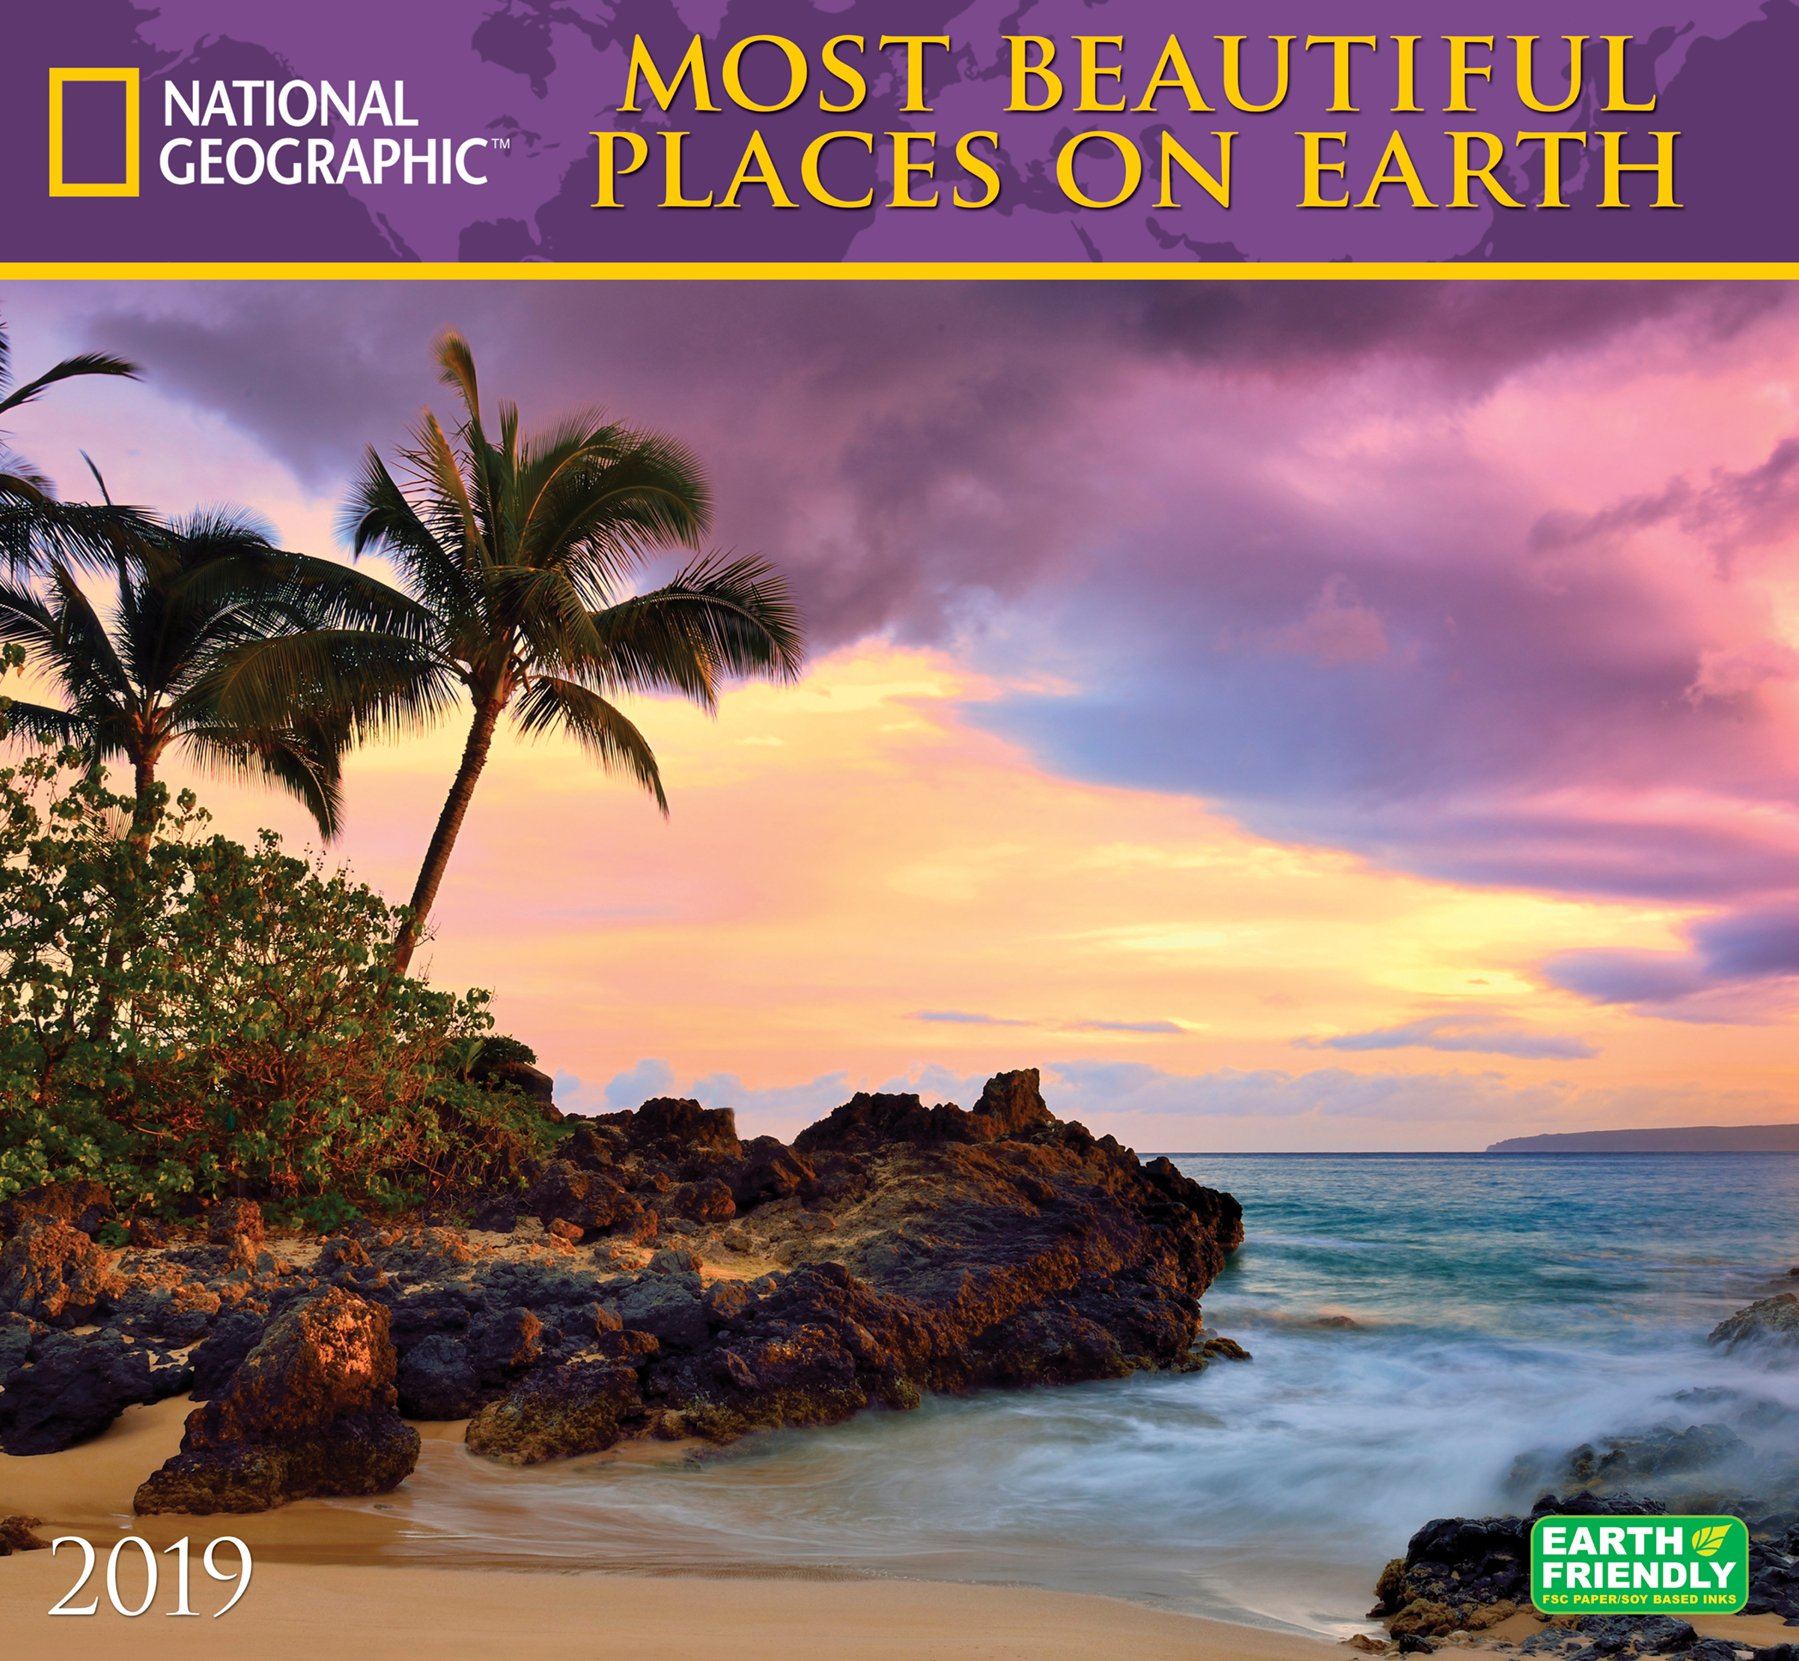 national geographic most beautiful places on earth 2019 wall calendar